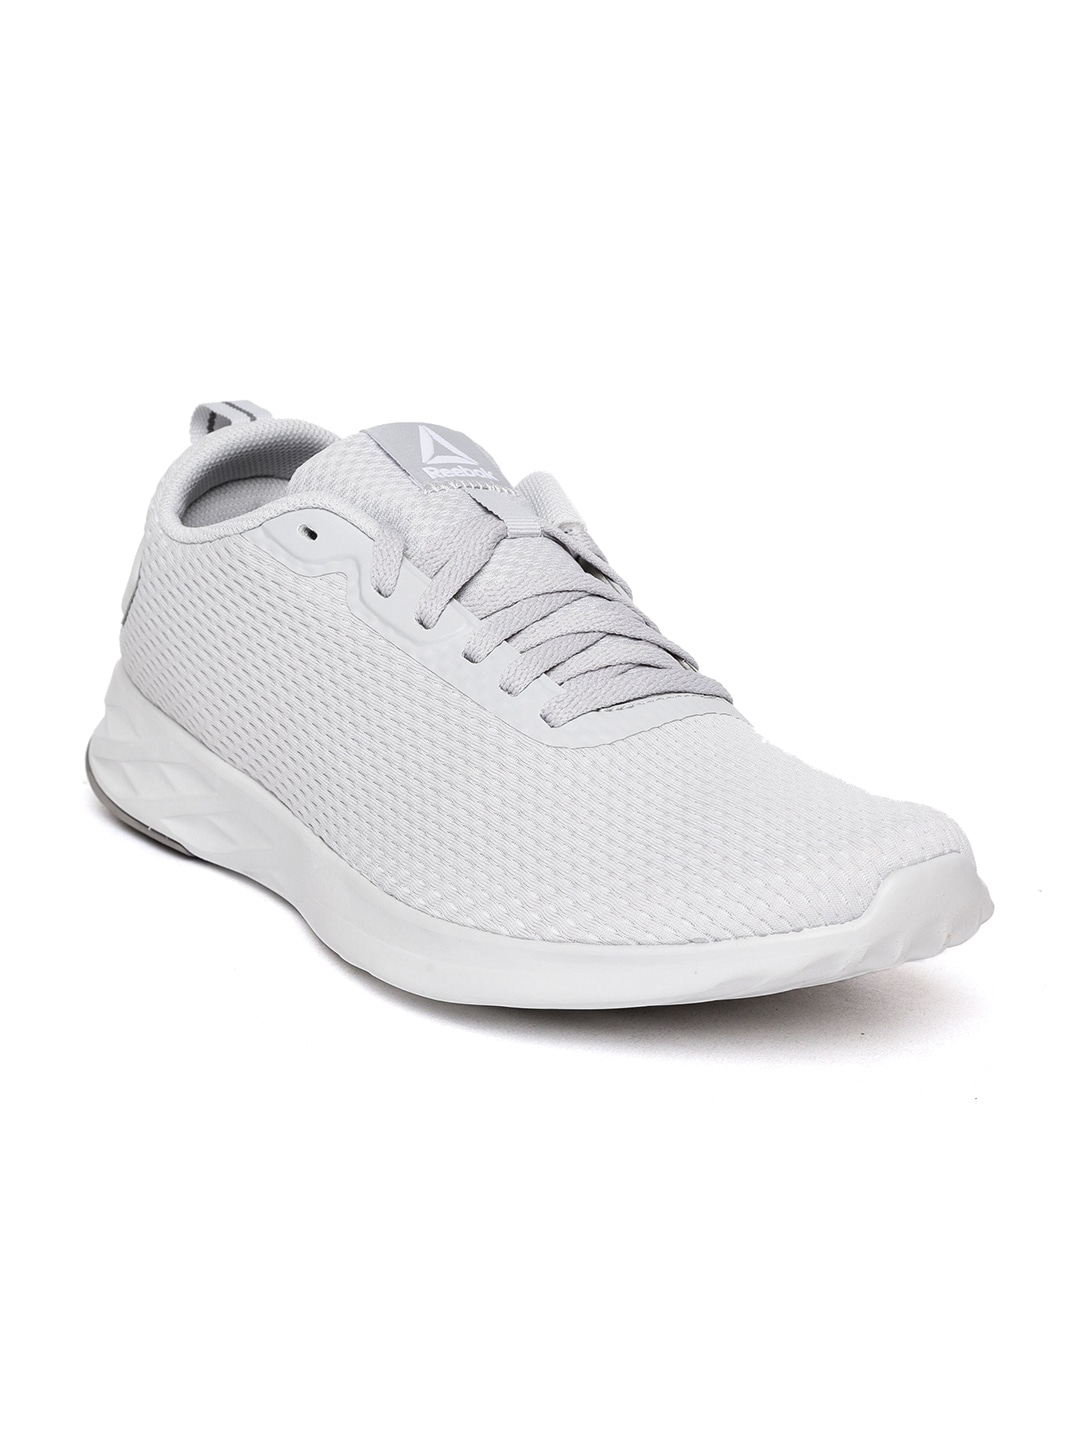 7277f8d6c76446 Reebok She - Buy Reebok She online in India